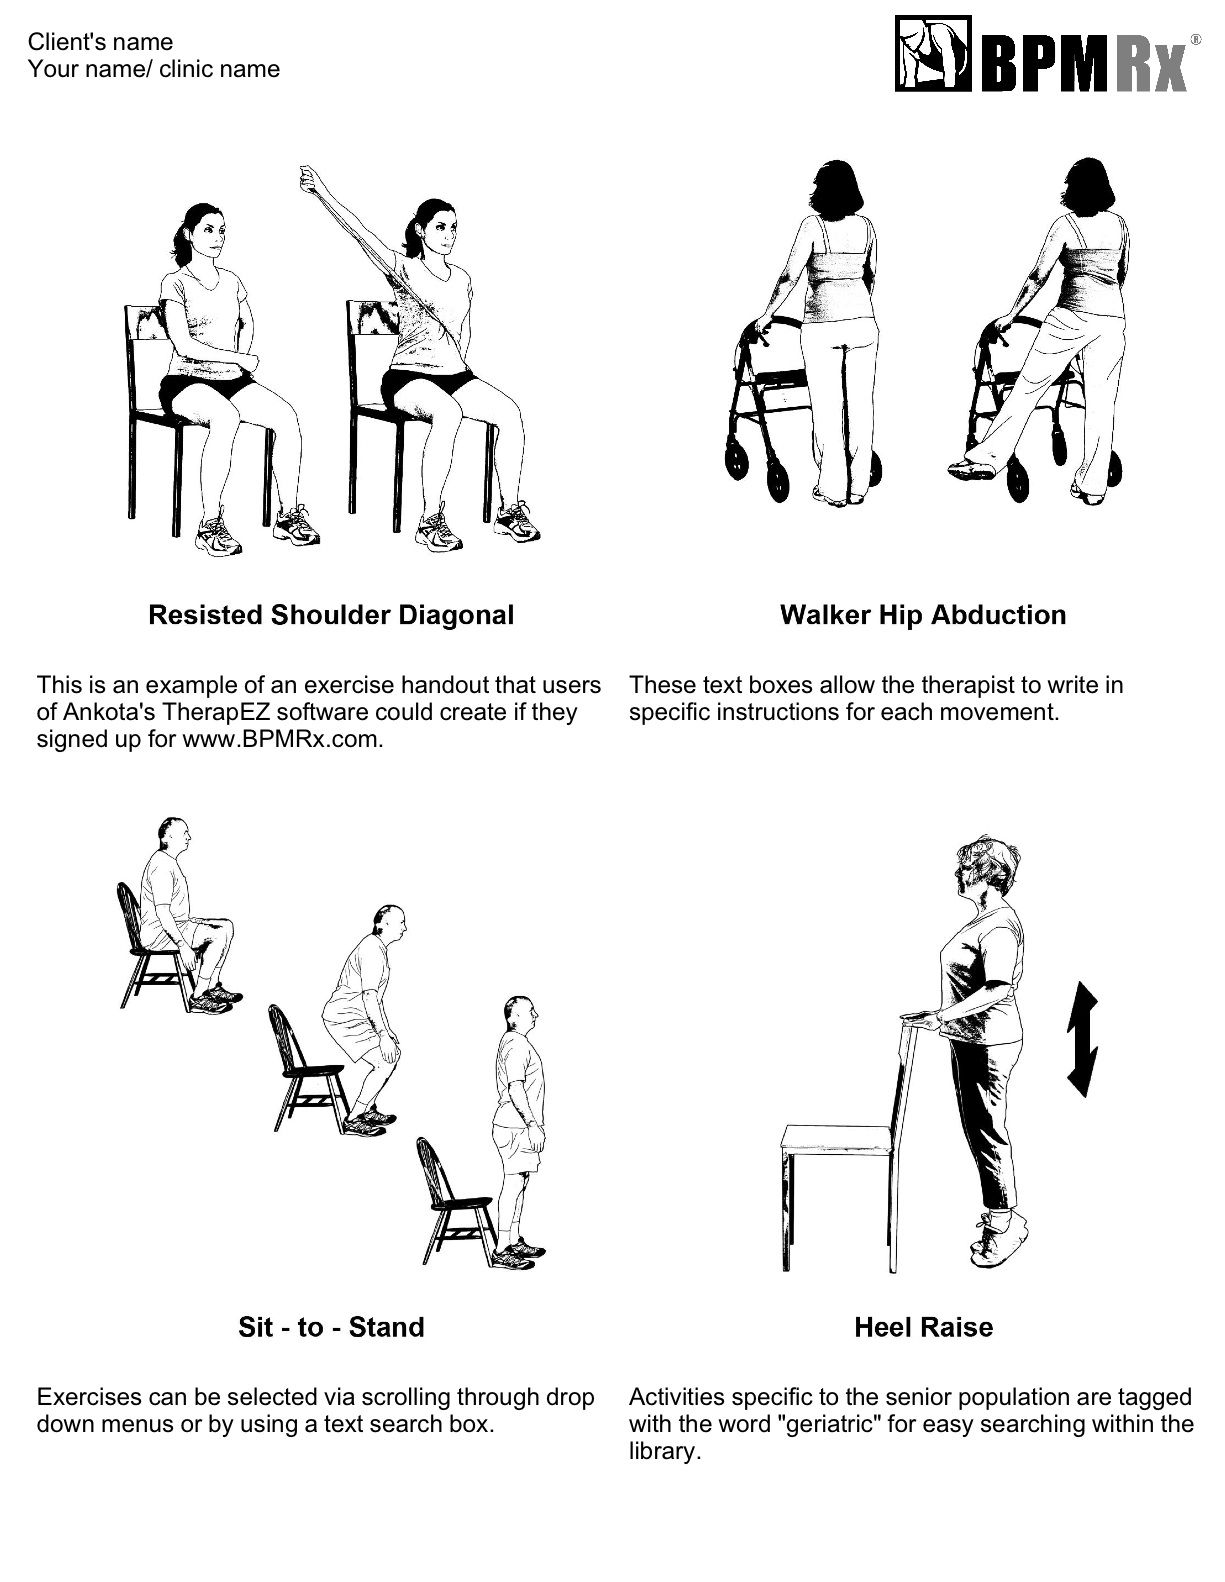 Physical Therapy Back Exercises Will They Keep Going With Their Exercise Routine Did They